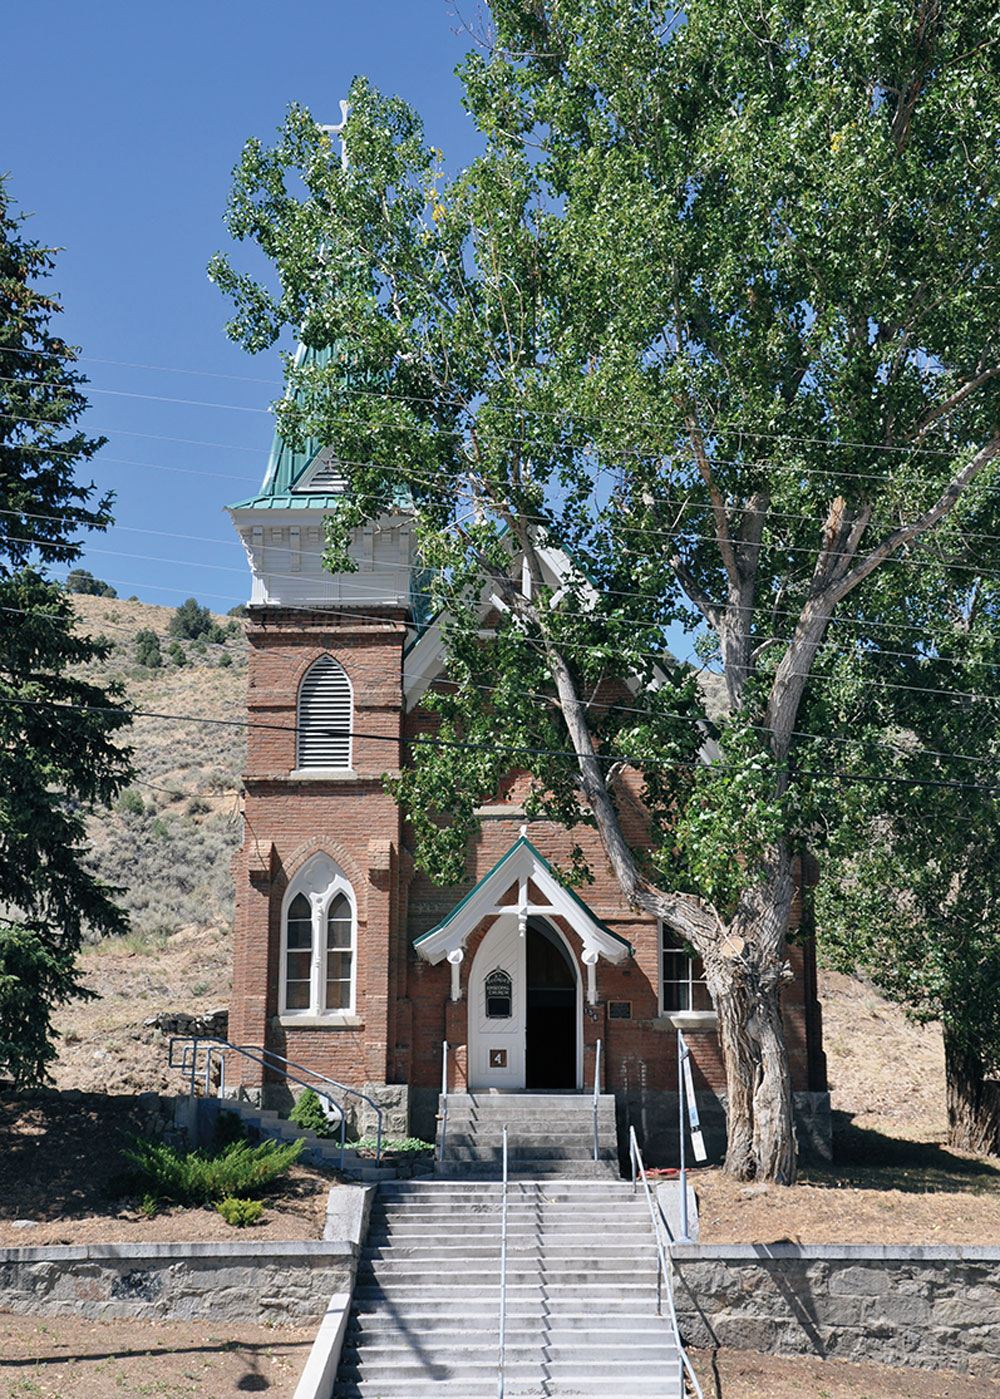 austin nevada church true west magazine